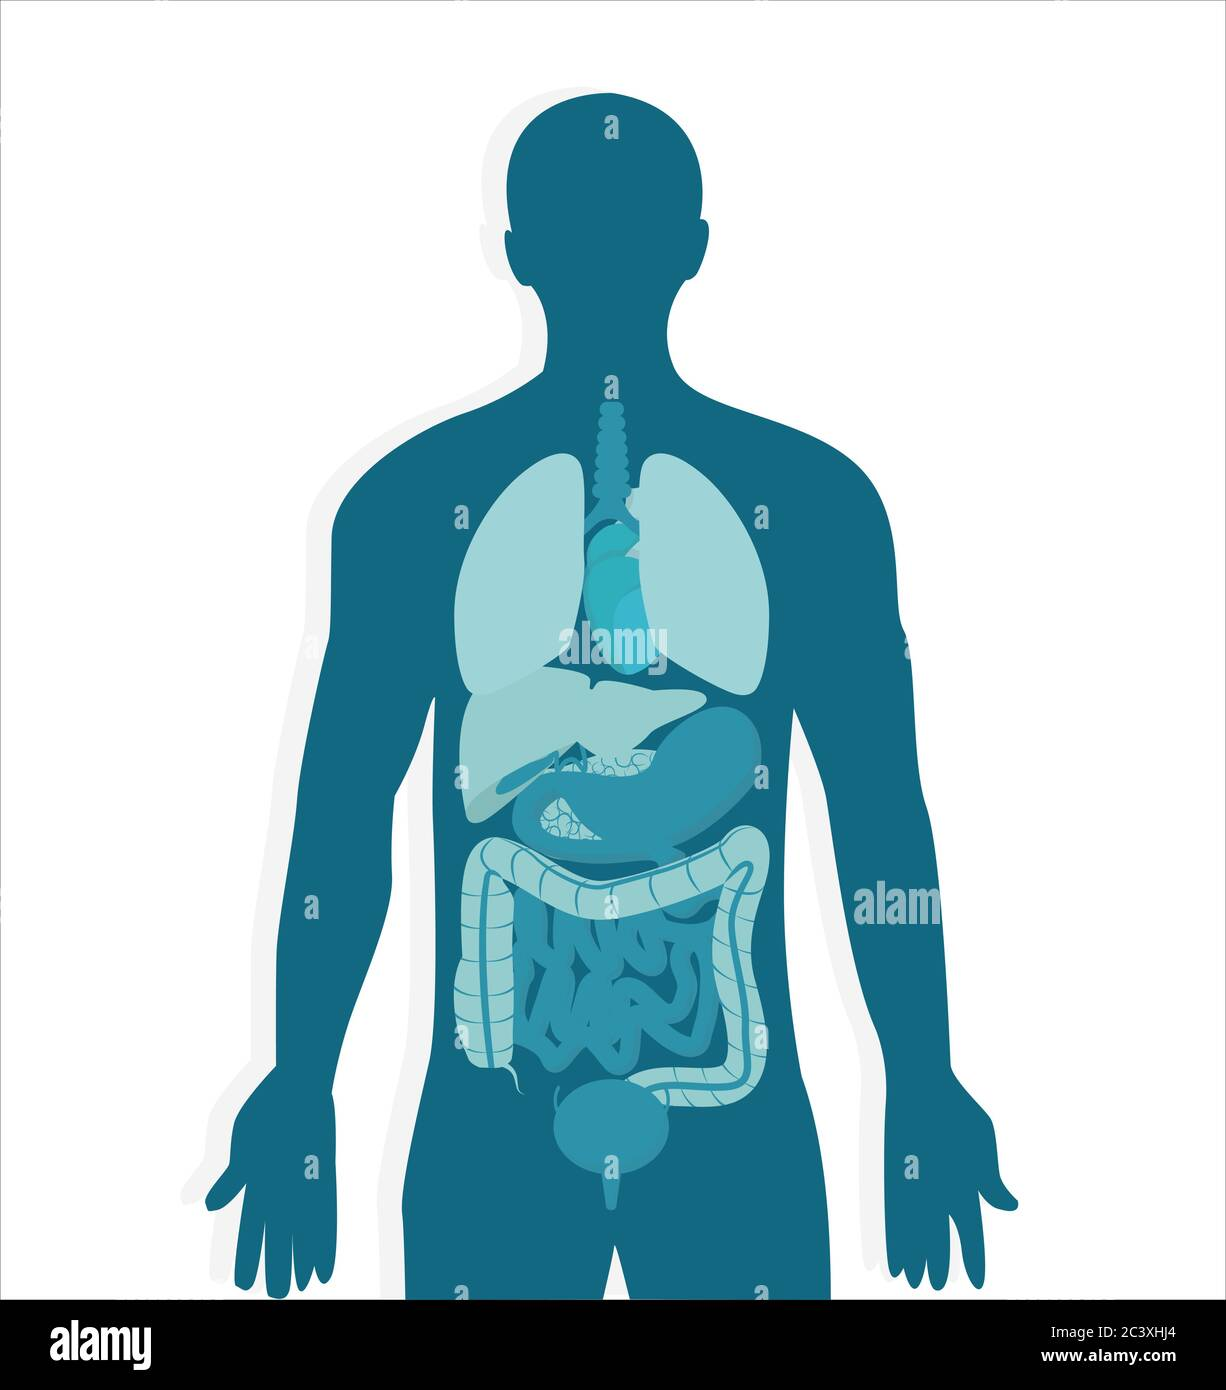 human body anatomy vector image of male internal organs in blue colors stock vector image art alamy https www alamy com human body anatomy vector image of male internal organs in blue colors image363846284 html